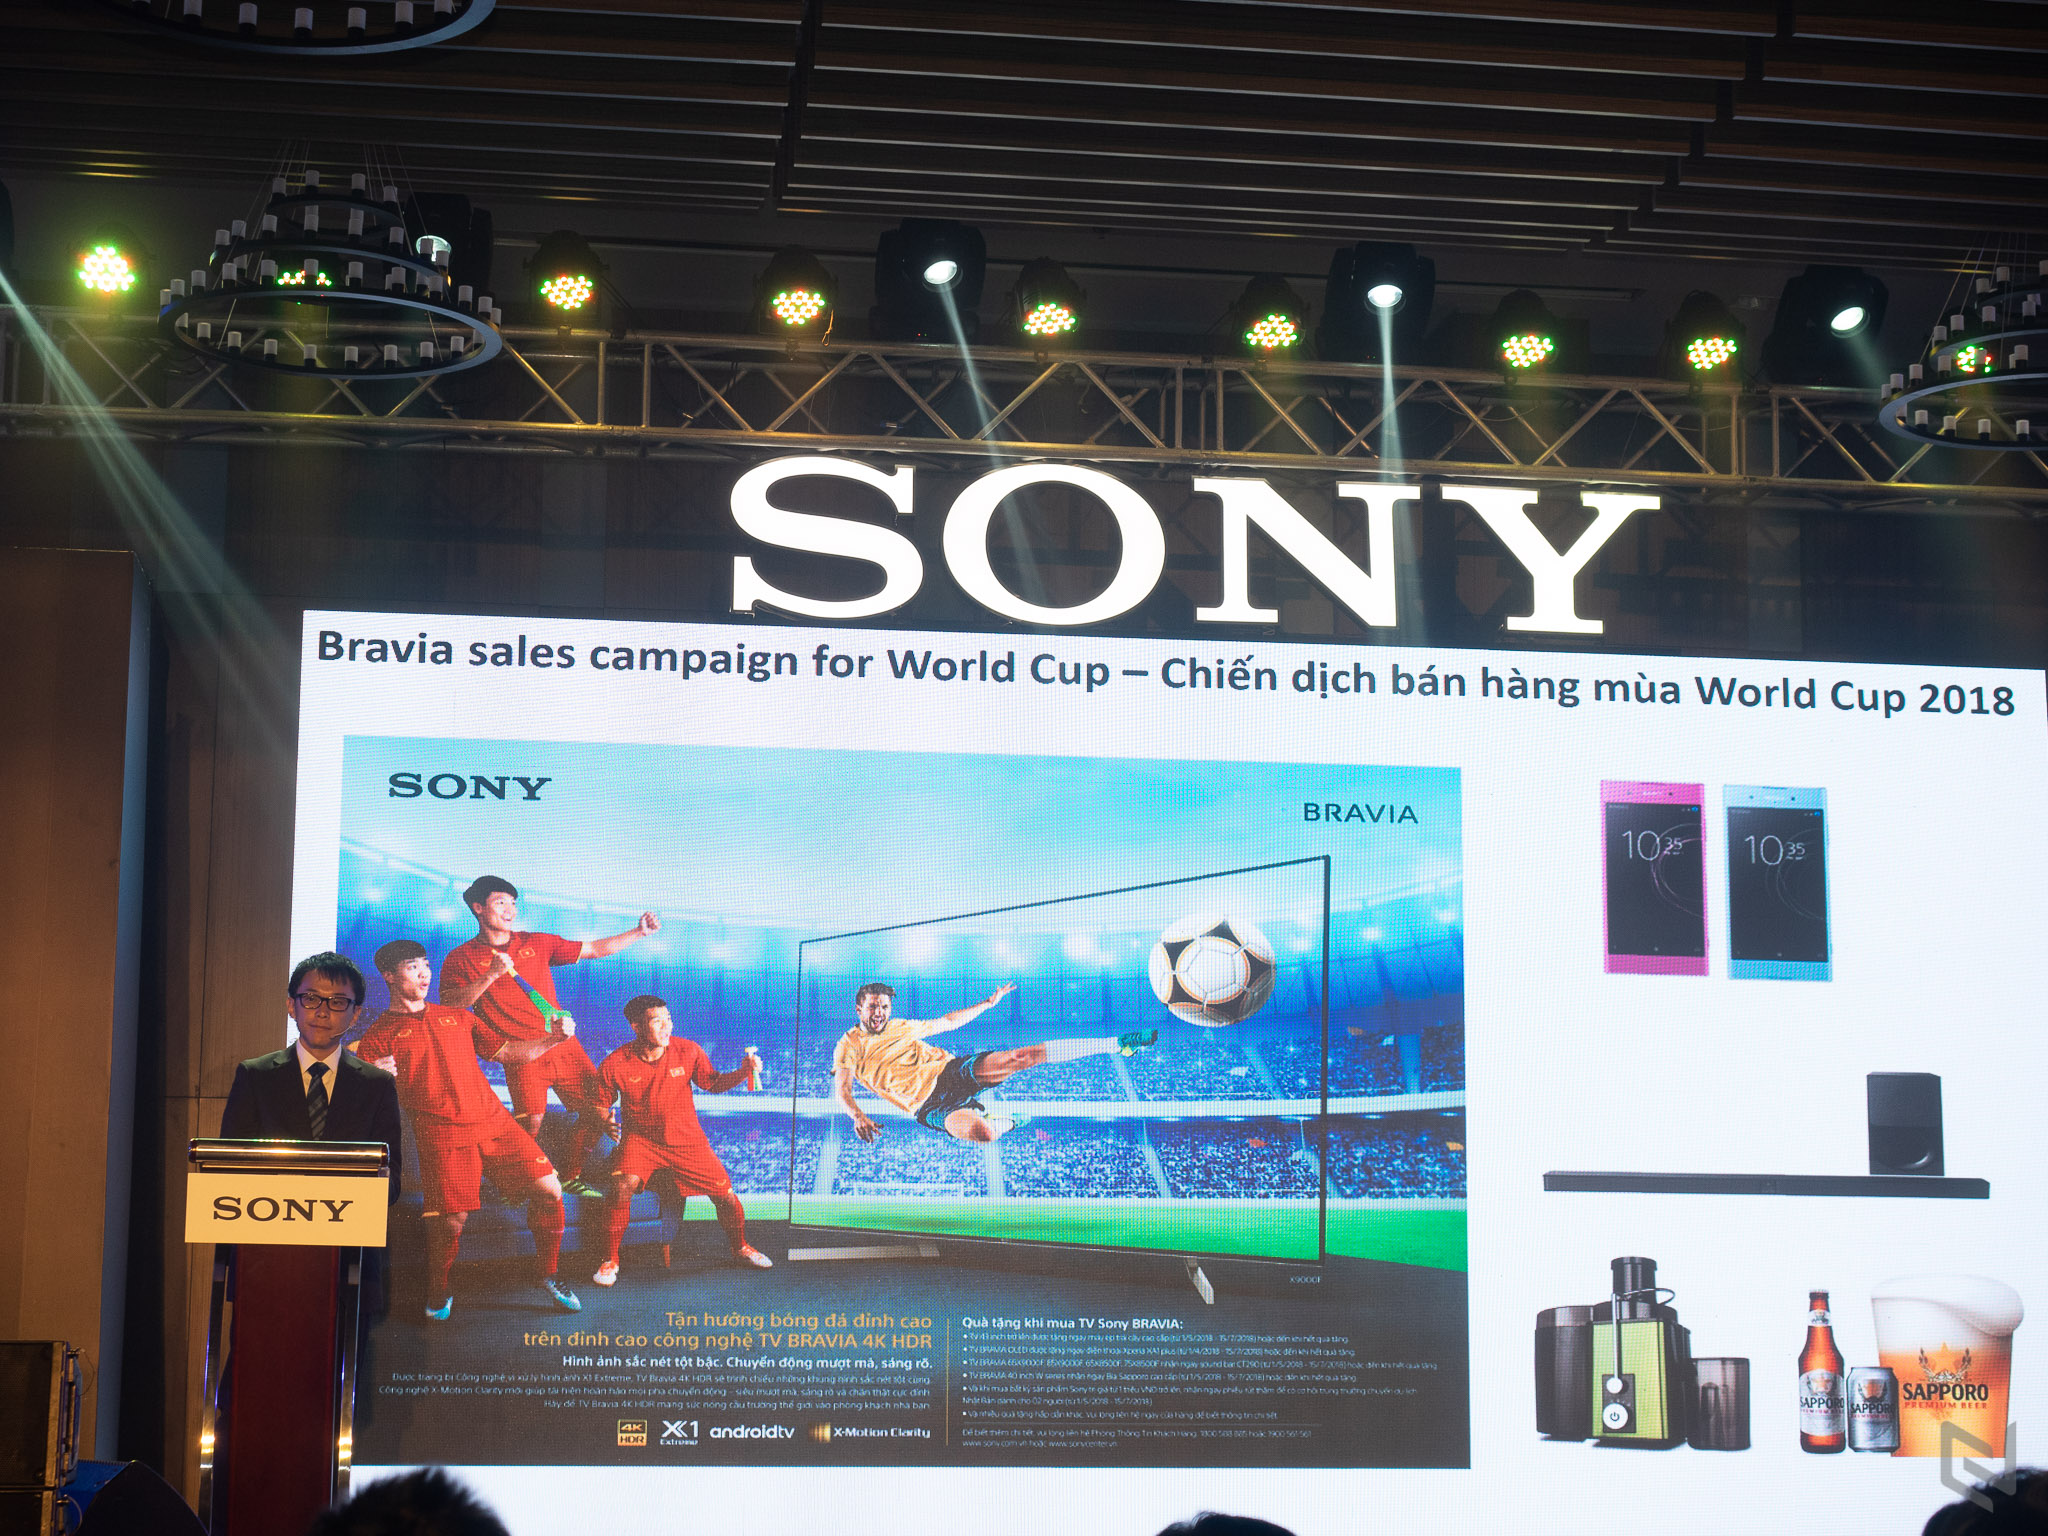 Monitor Cases besides Television Size To Distance Relationship as well Tivi Sony 4k Hdr Android X8500d 55 Inch Model 2016 Kd 55x8500d as well Search also I. on sony bravia 24 inch